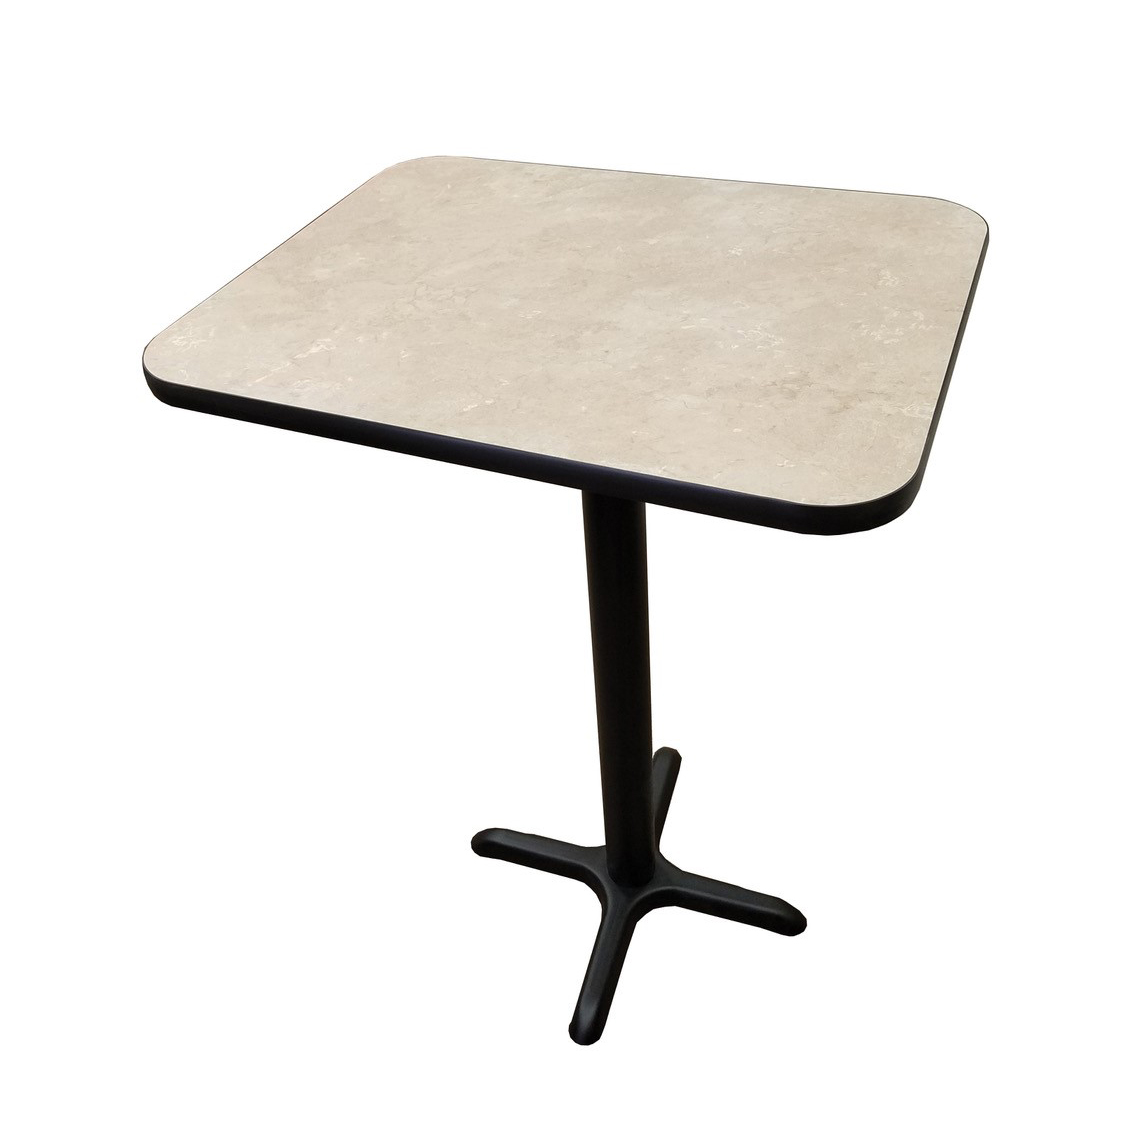 Oak Street EBUM3030-BB table top, molded laminate